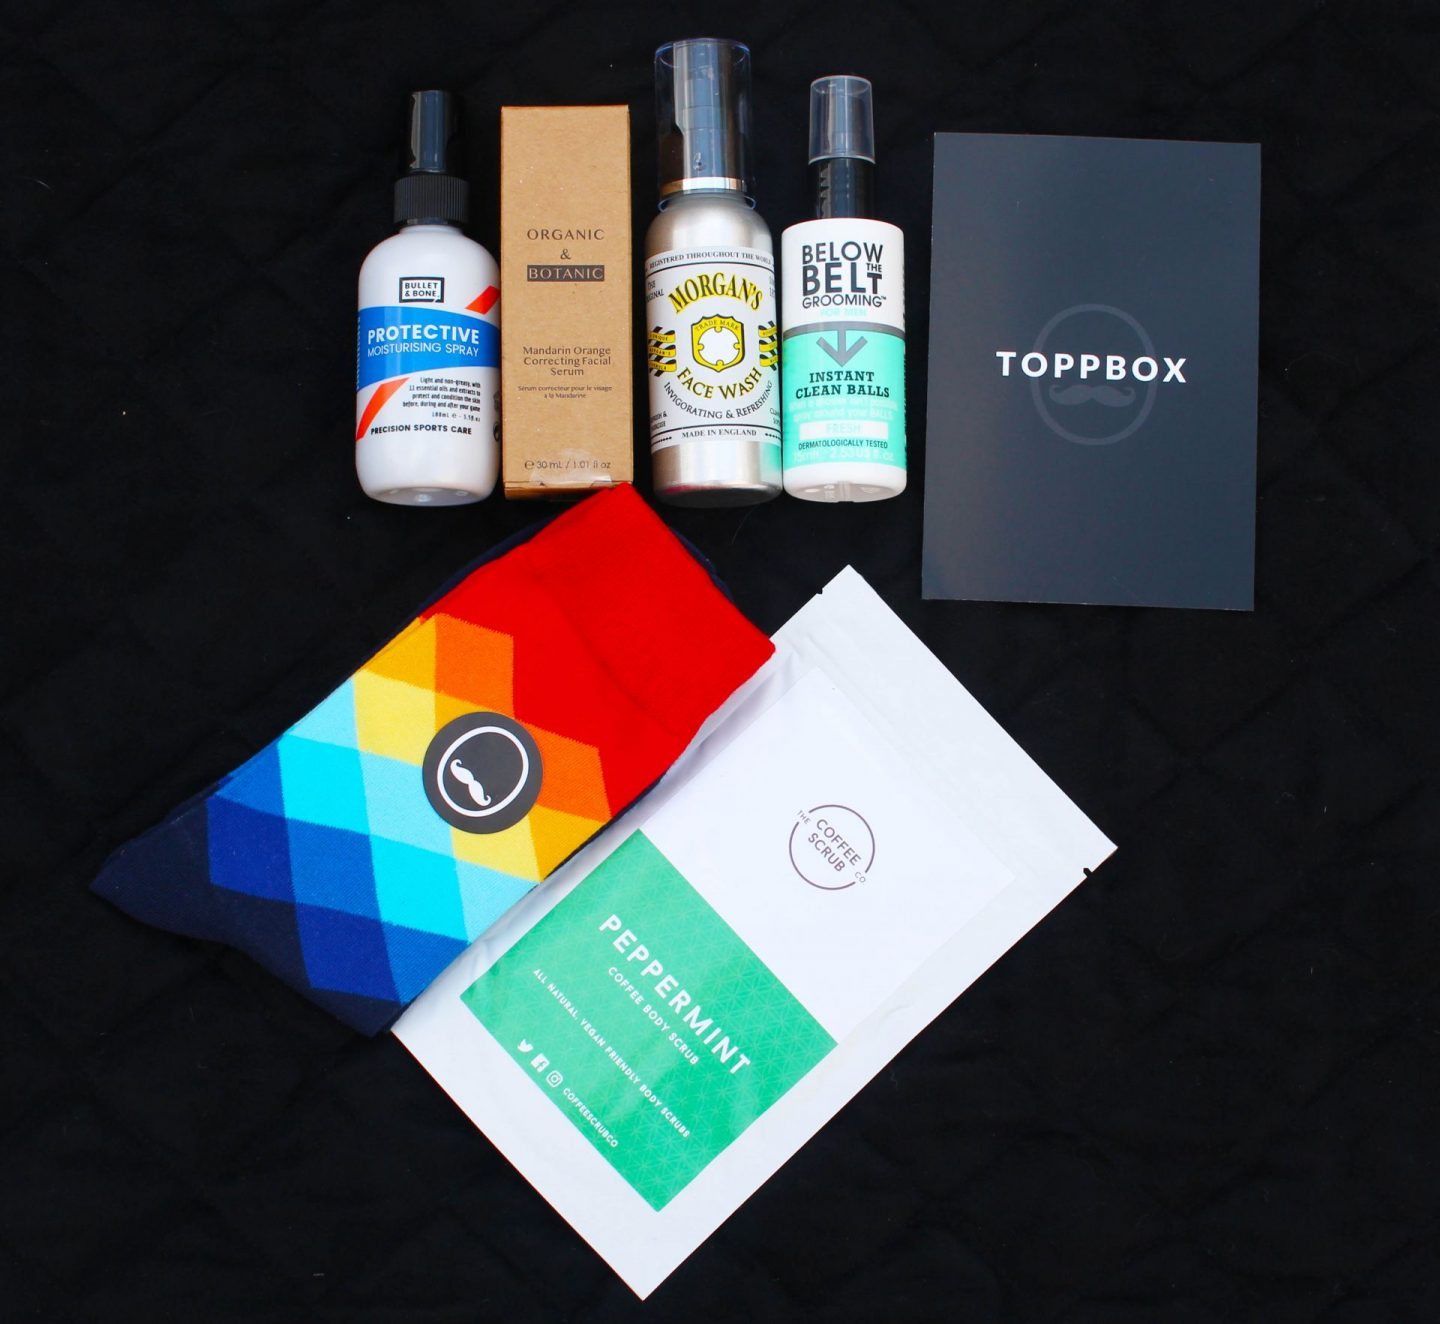 Toppbox, Toppbox review, male grooming, Topbox subscription service